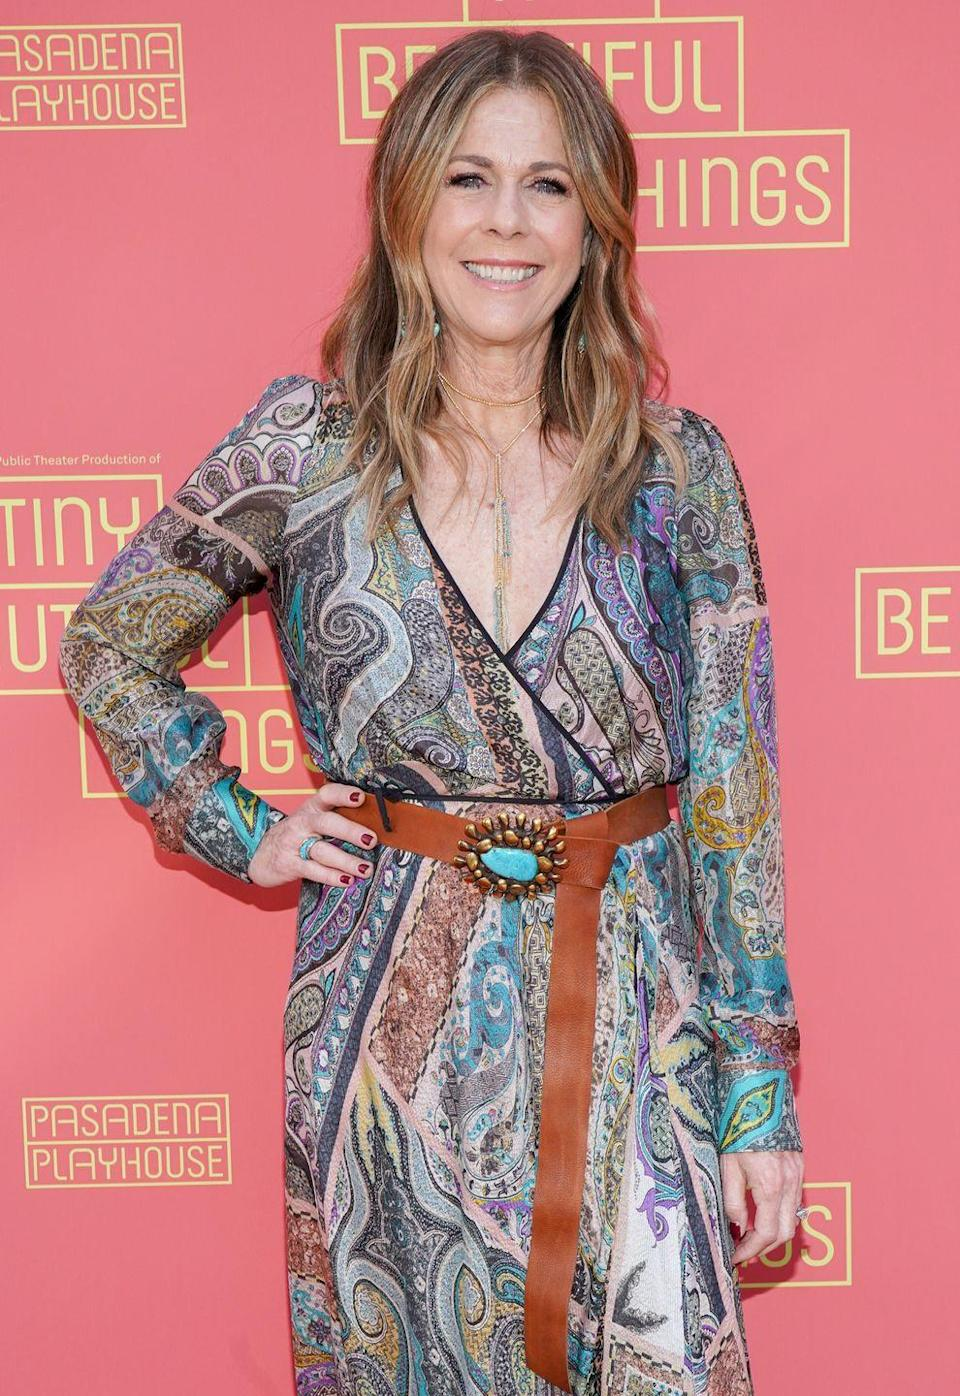 """<p>Singer and actress Rita Wilson opened up about her invasive lobular carcinoma—the second most <a href=""""https://www.prevention.com/health/health-conditions/a22734913/breast-cancer-types/"""" rel=""""nofollow noopener"""" target=""""_blank"""" data-ylk=""""slk:common type of breast cancer"""" class=""""link rapid-noclick-resp"""">common type of breast cancer</a>—in 2015. In an interview with <a href=""""https://people.com/celebrity/rita-wilson-breast-cancer-actress-undergoes-double-mastectomy-reconstruction/"""" rel=""""nofollow noopener"""" target=""""_blank"""" data-ylk=""""slk:PEOPLE"""" class=""""link rapid-noclick-resp""""><em>PEOPLE</em></a>, she expressed gratitude for her entire support system, saying, """"I am recovering and most importantly, expected to make a full recovery. Why? Because I caught this early, have excellent doctors and because I got a second opinion.""""</p>"""